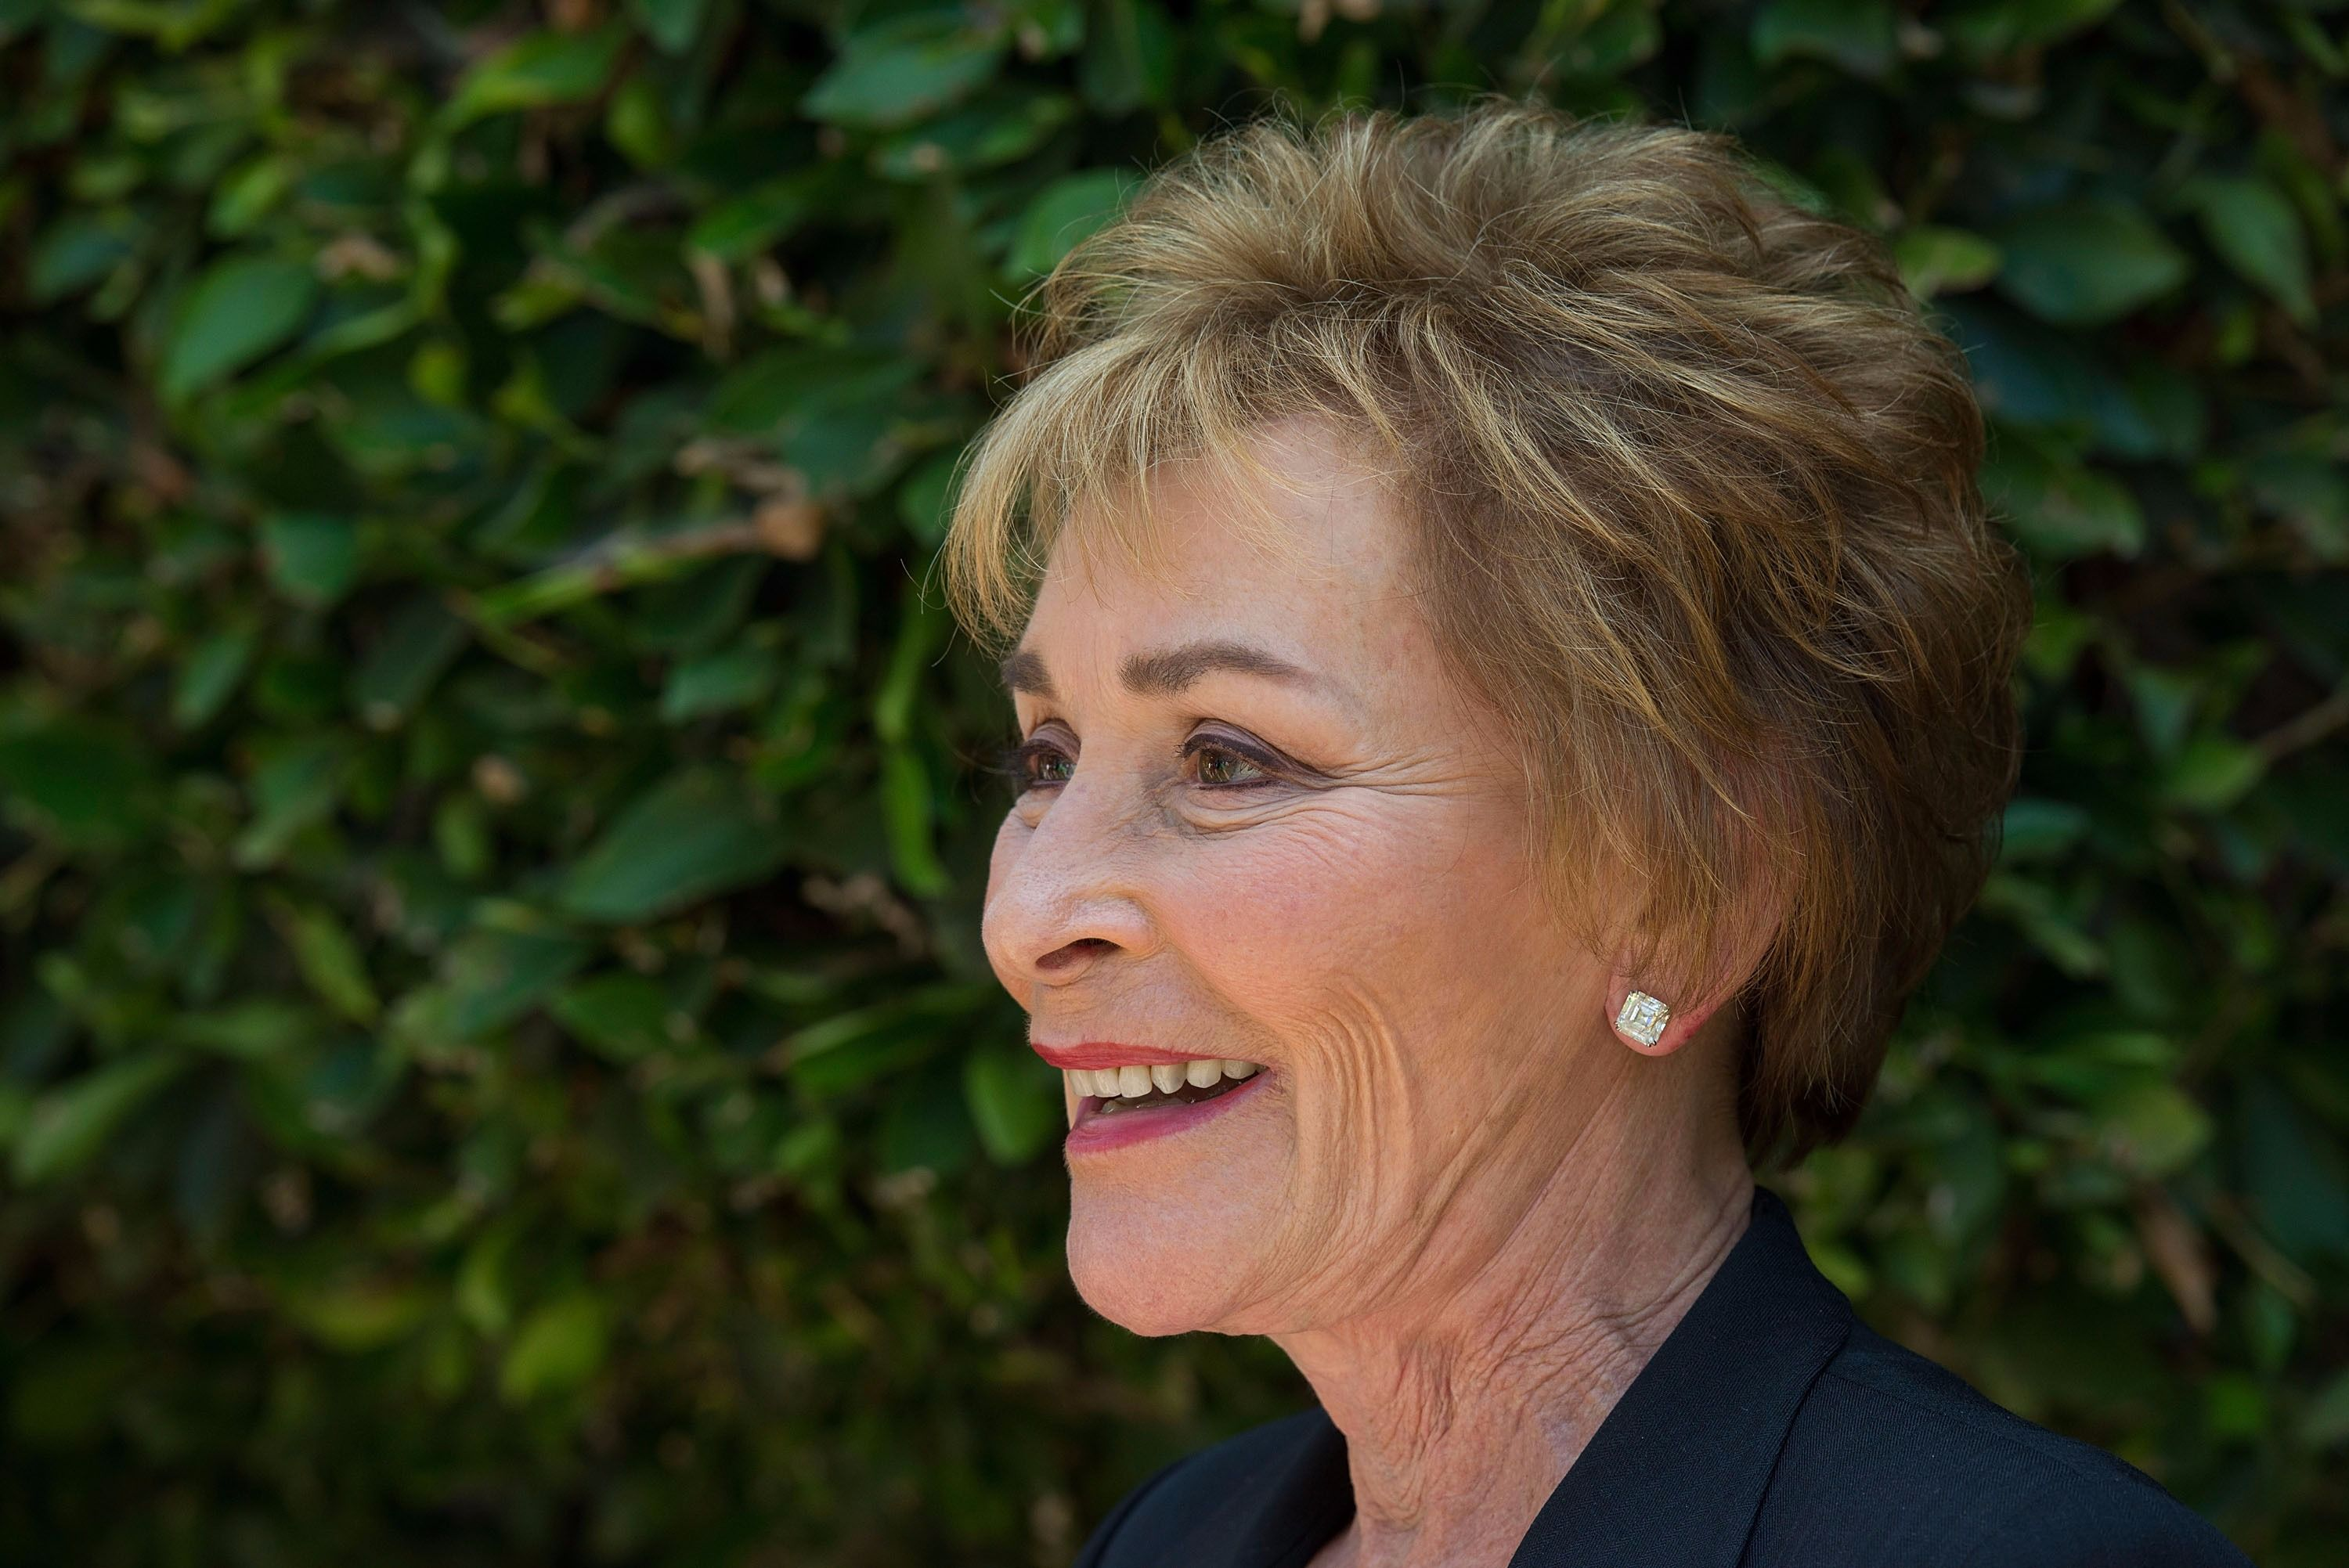 Judge Judy lets dog choose its owner